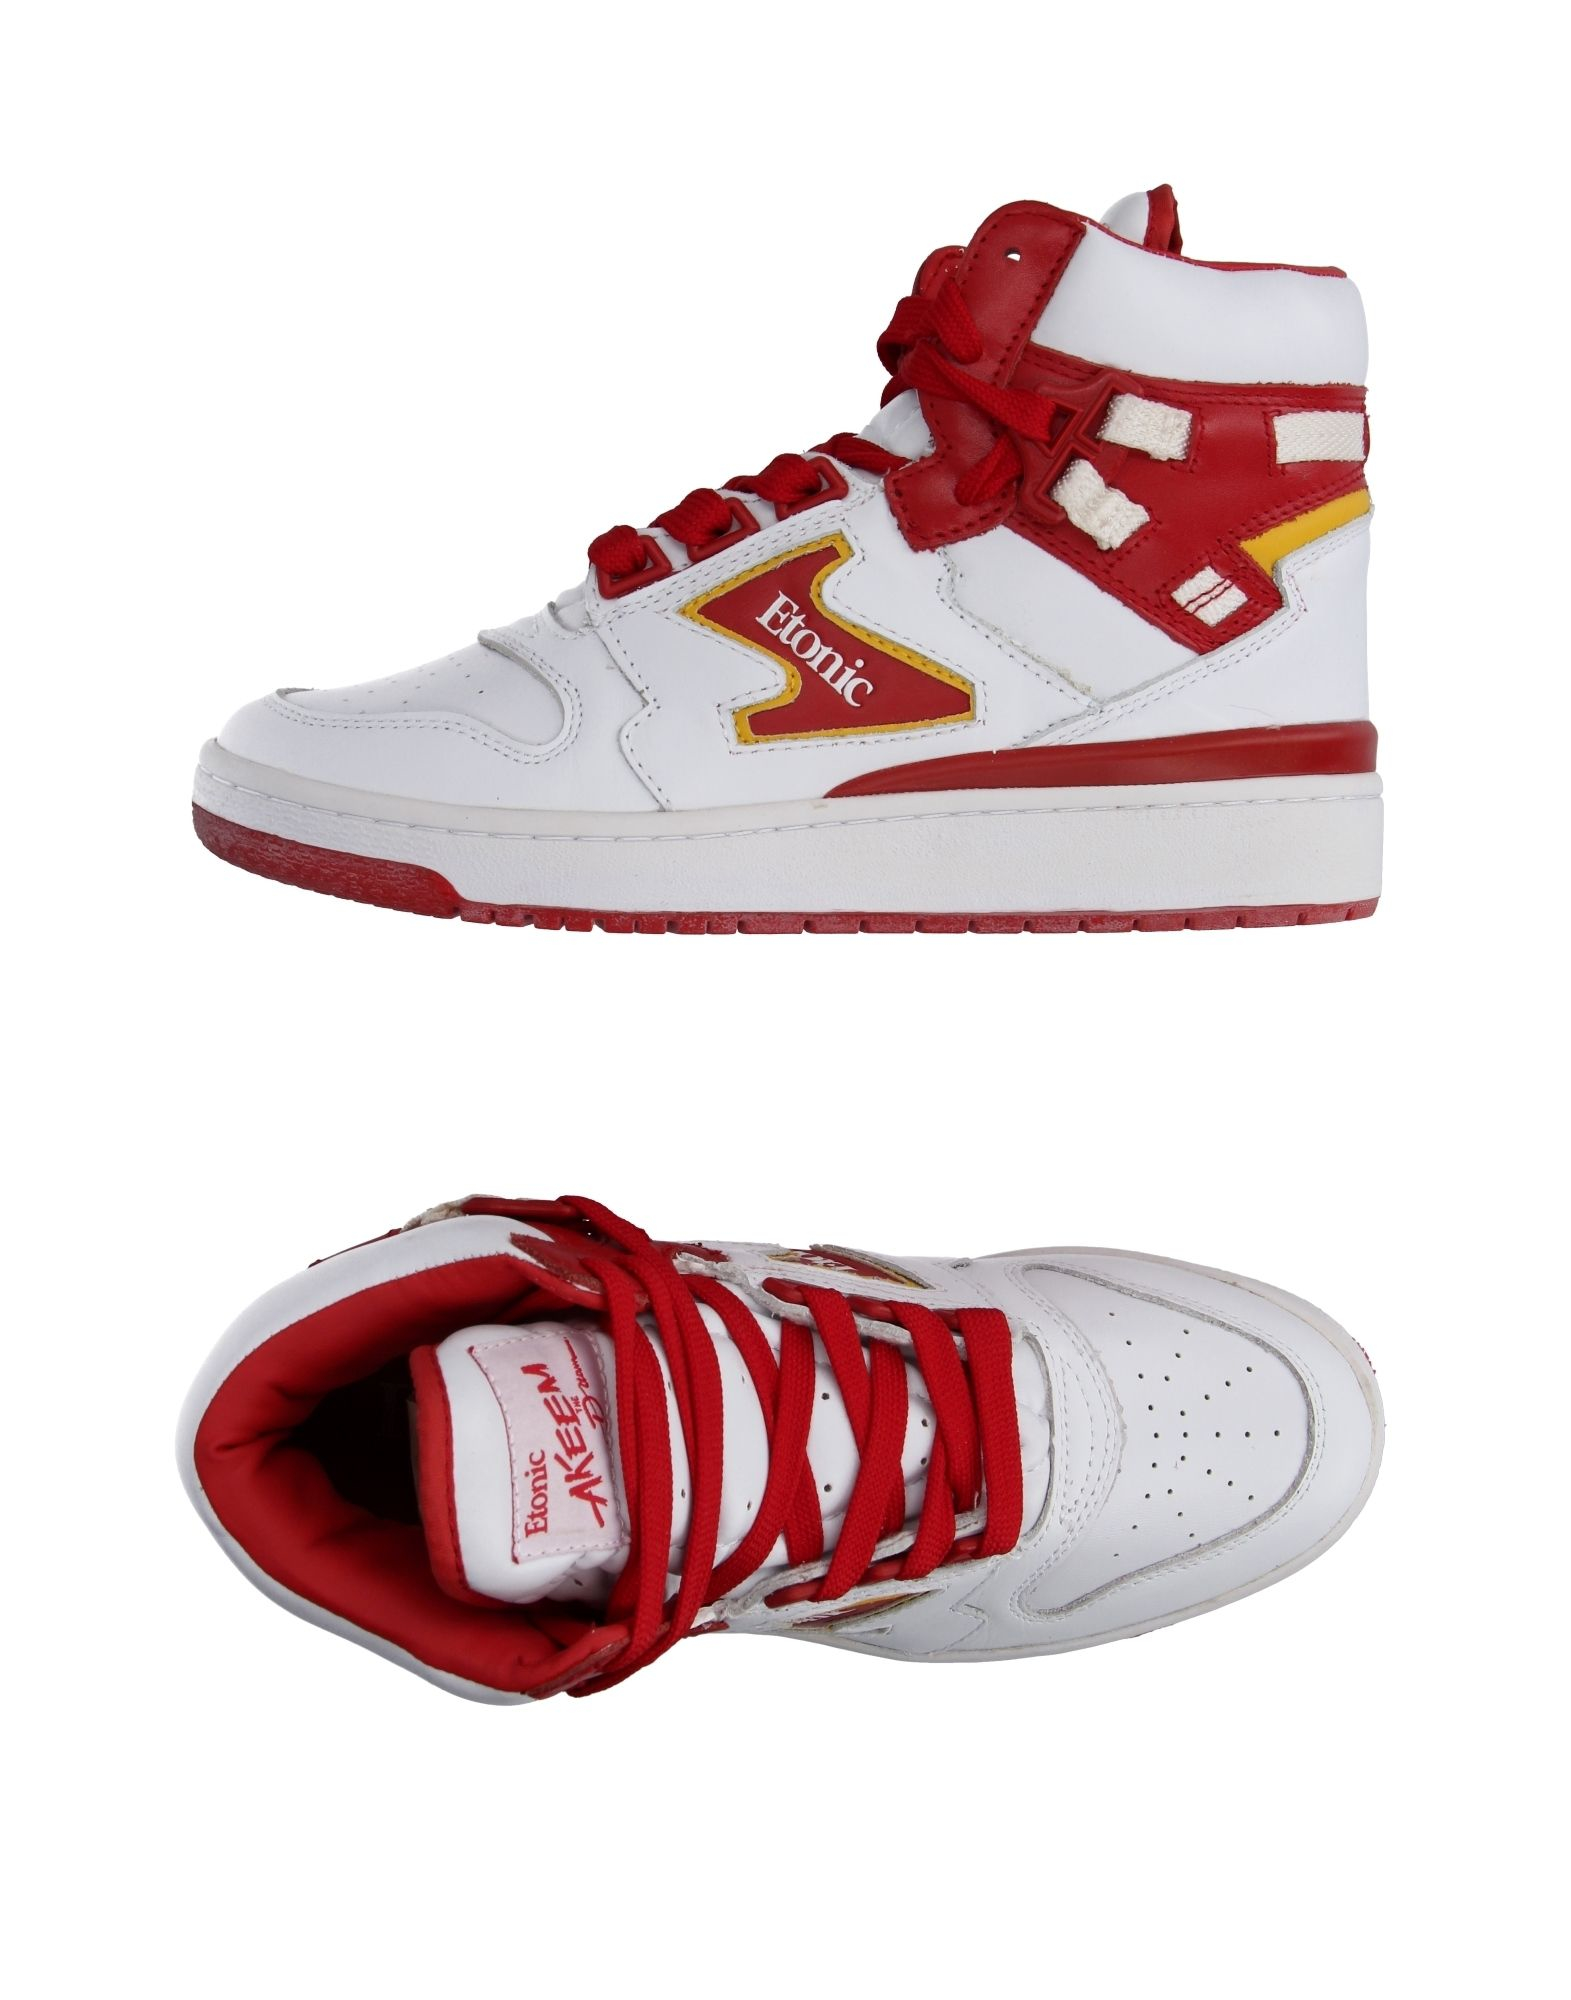 Etonic Shoes High Top Sneakers